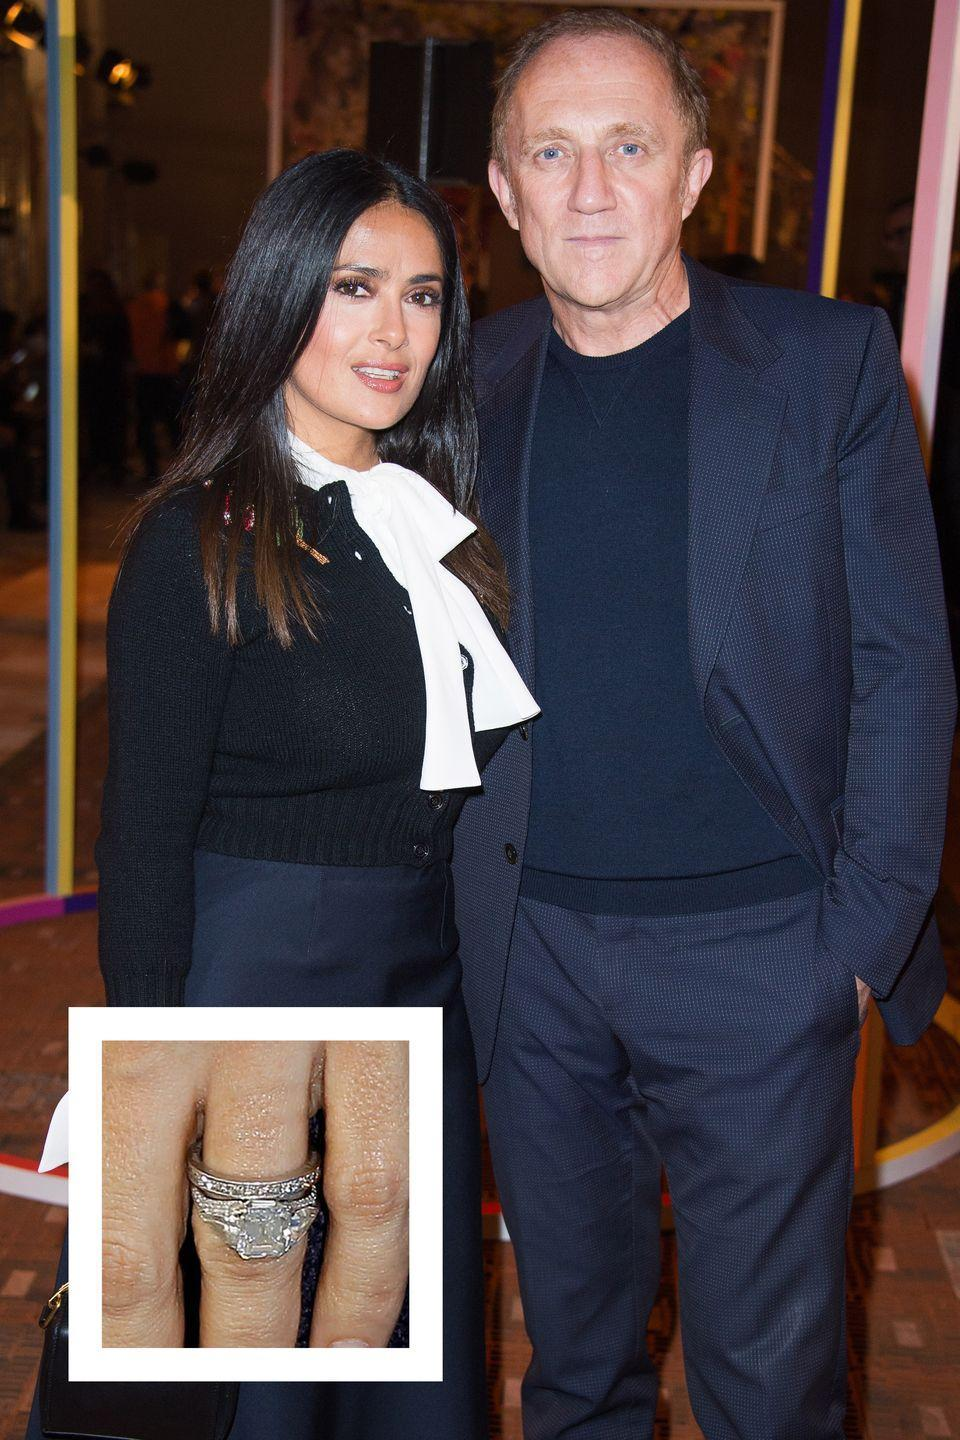 """<p>Salma Hayek and French businessman François-Henri Pinault married in 2009. Hayek's gorgeous engagement ring is a five-carat oval-cut center stone with two trillion diamond accents on the side, <a href=""""https://www.brides.com/photos/celebrity-engagement-ring-photos-salma-hayek"""" rel=""""nofollow noopener"""" target=""""_blank"""" data-ylk=""""slk:Brides reports."""" class=""""link rapid-noclick-resp""""><em>Brides </em>reports.</a></p>"""